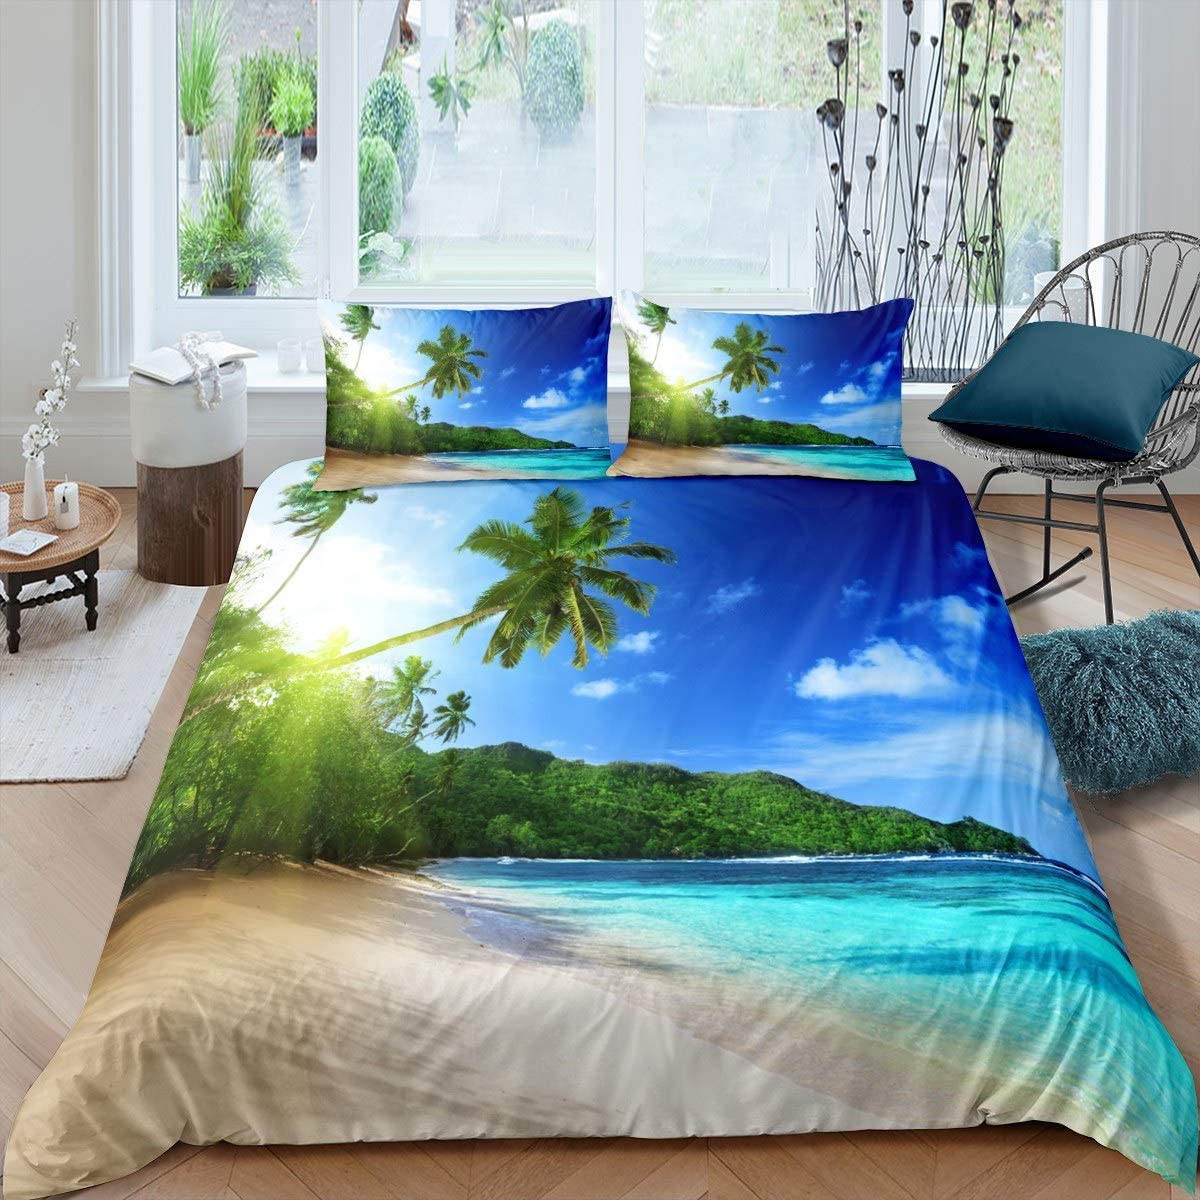 Amazon Com Feelyou Ocean Beach Themed Bedding Set For Kids Boys Girls Teens Summer Hawaiian Duvet Cover Sea Printed Tropical Nature Pattern Comforter Cover Palm Tree Printed Bedspread Cover King Size Home